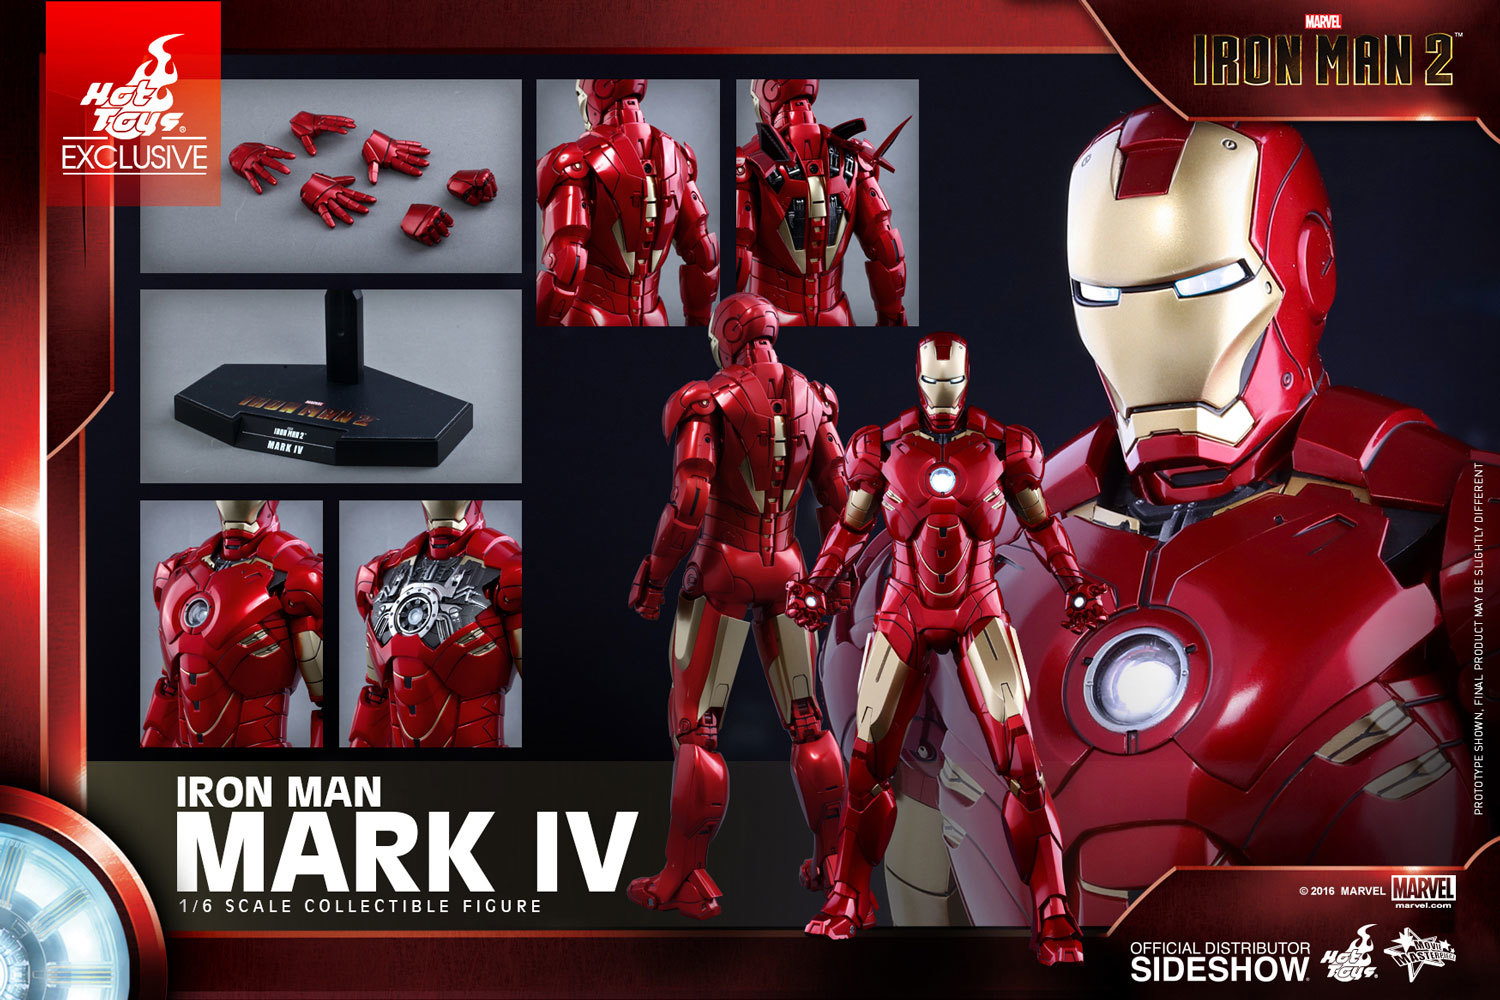 Iron Man 2 - Mark IV 1:6 Scale Collectible Figure image